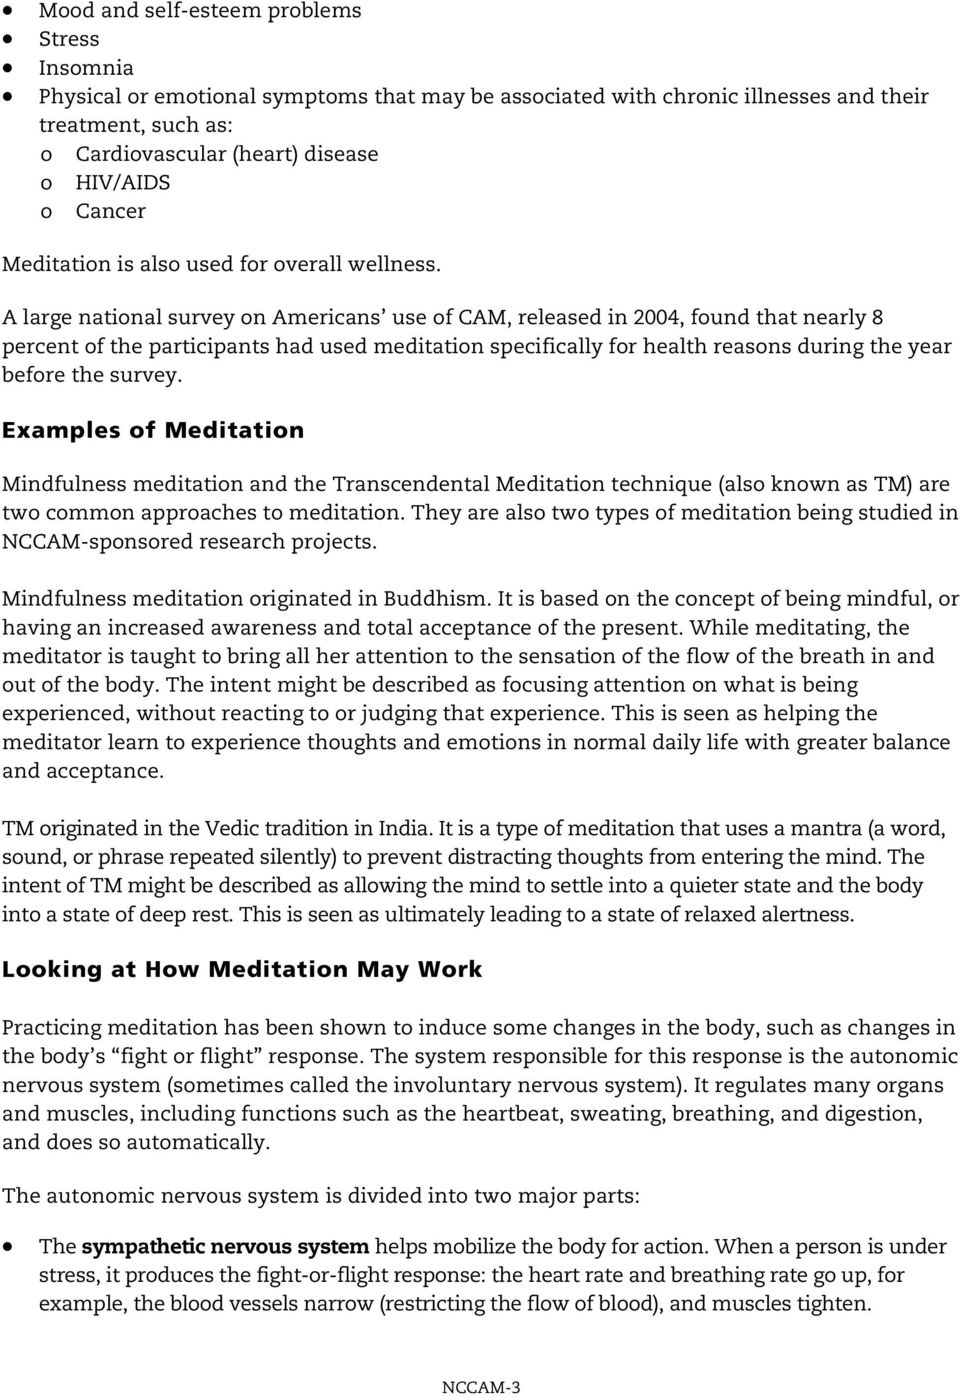 A large national survey on Americans use of CAM, released in 2004, found that nearly 8 percent of the participants had used meditation specifically for health reasons during the year before the